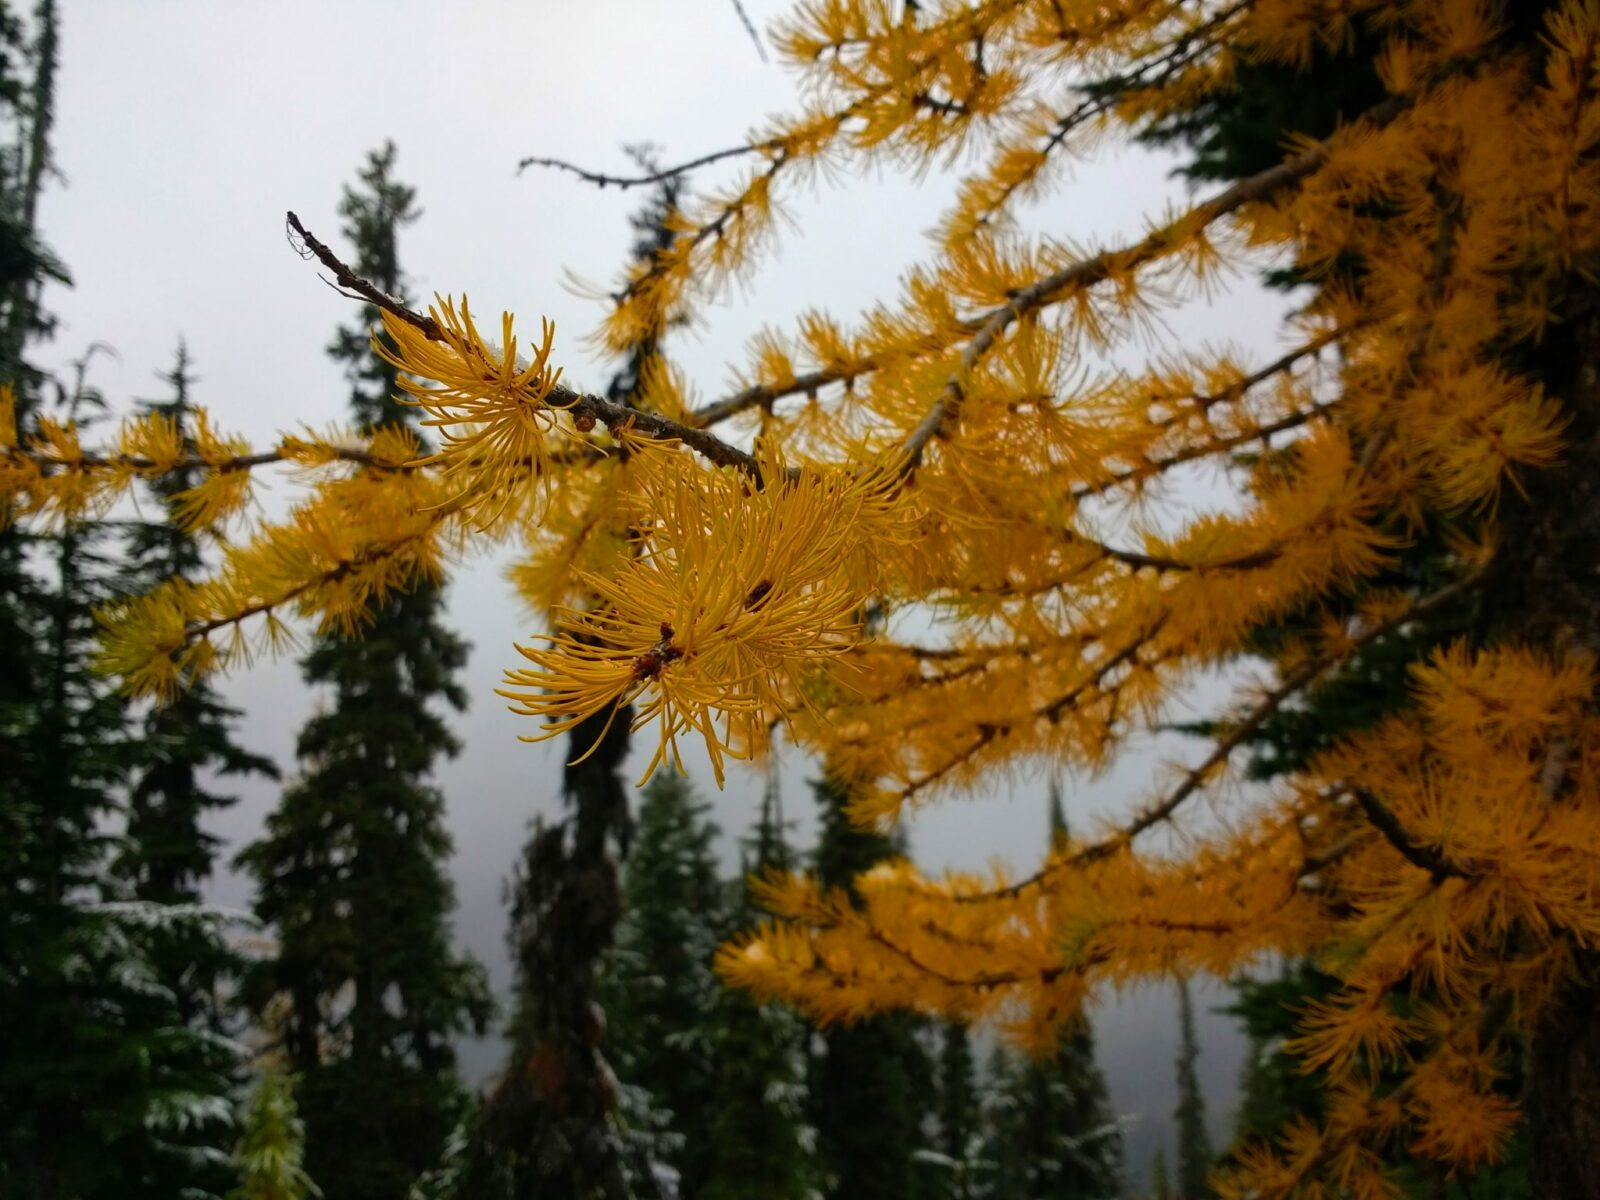 A close up of a golden larch tree branch in North Cascades National Park in October. In the distance are evergreen trees and it's a foggy gray day